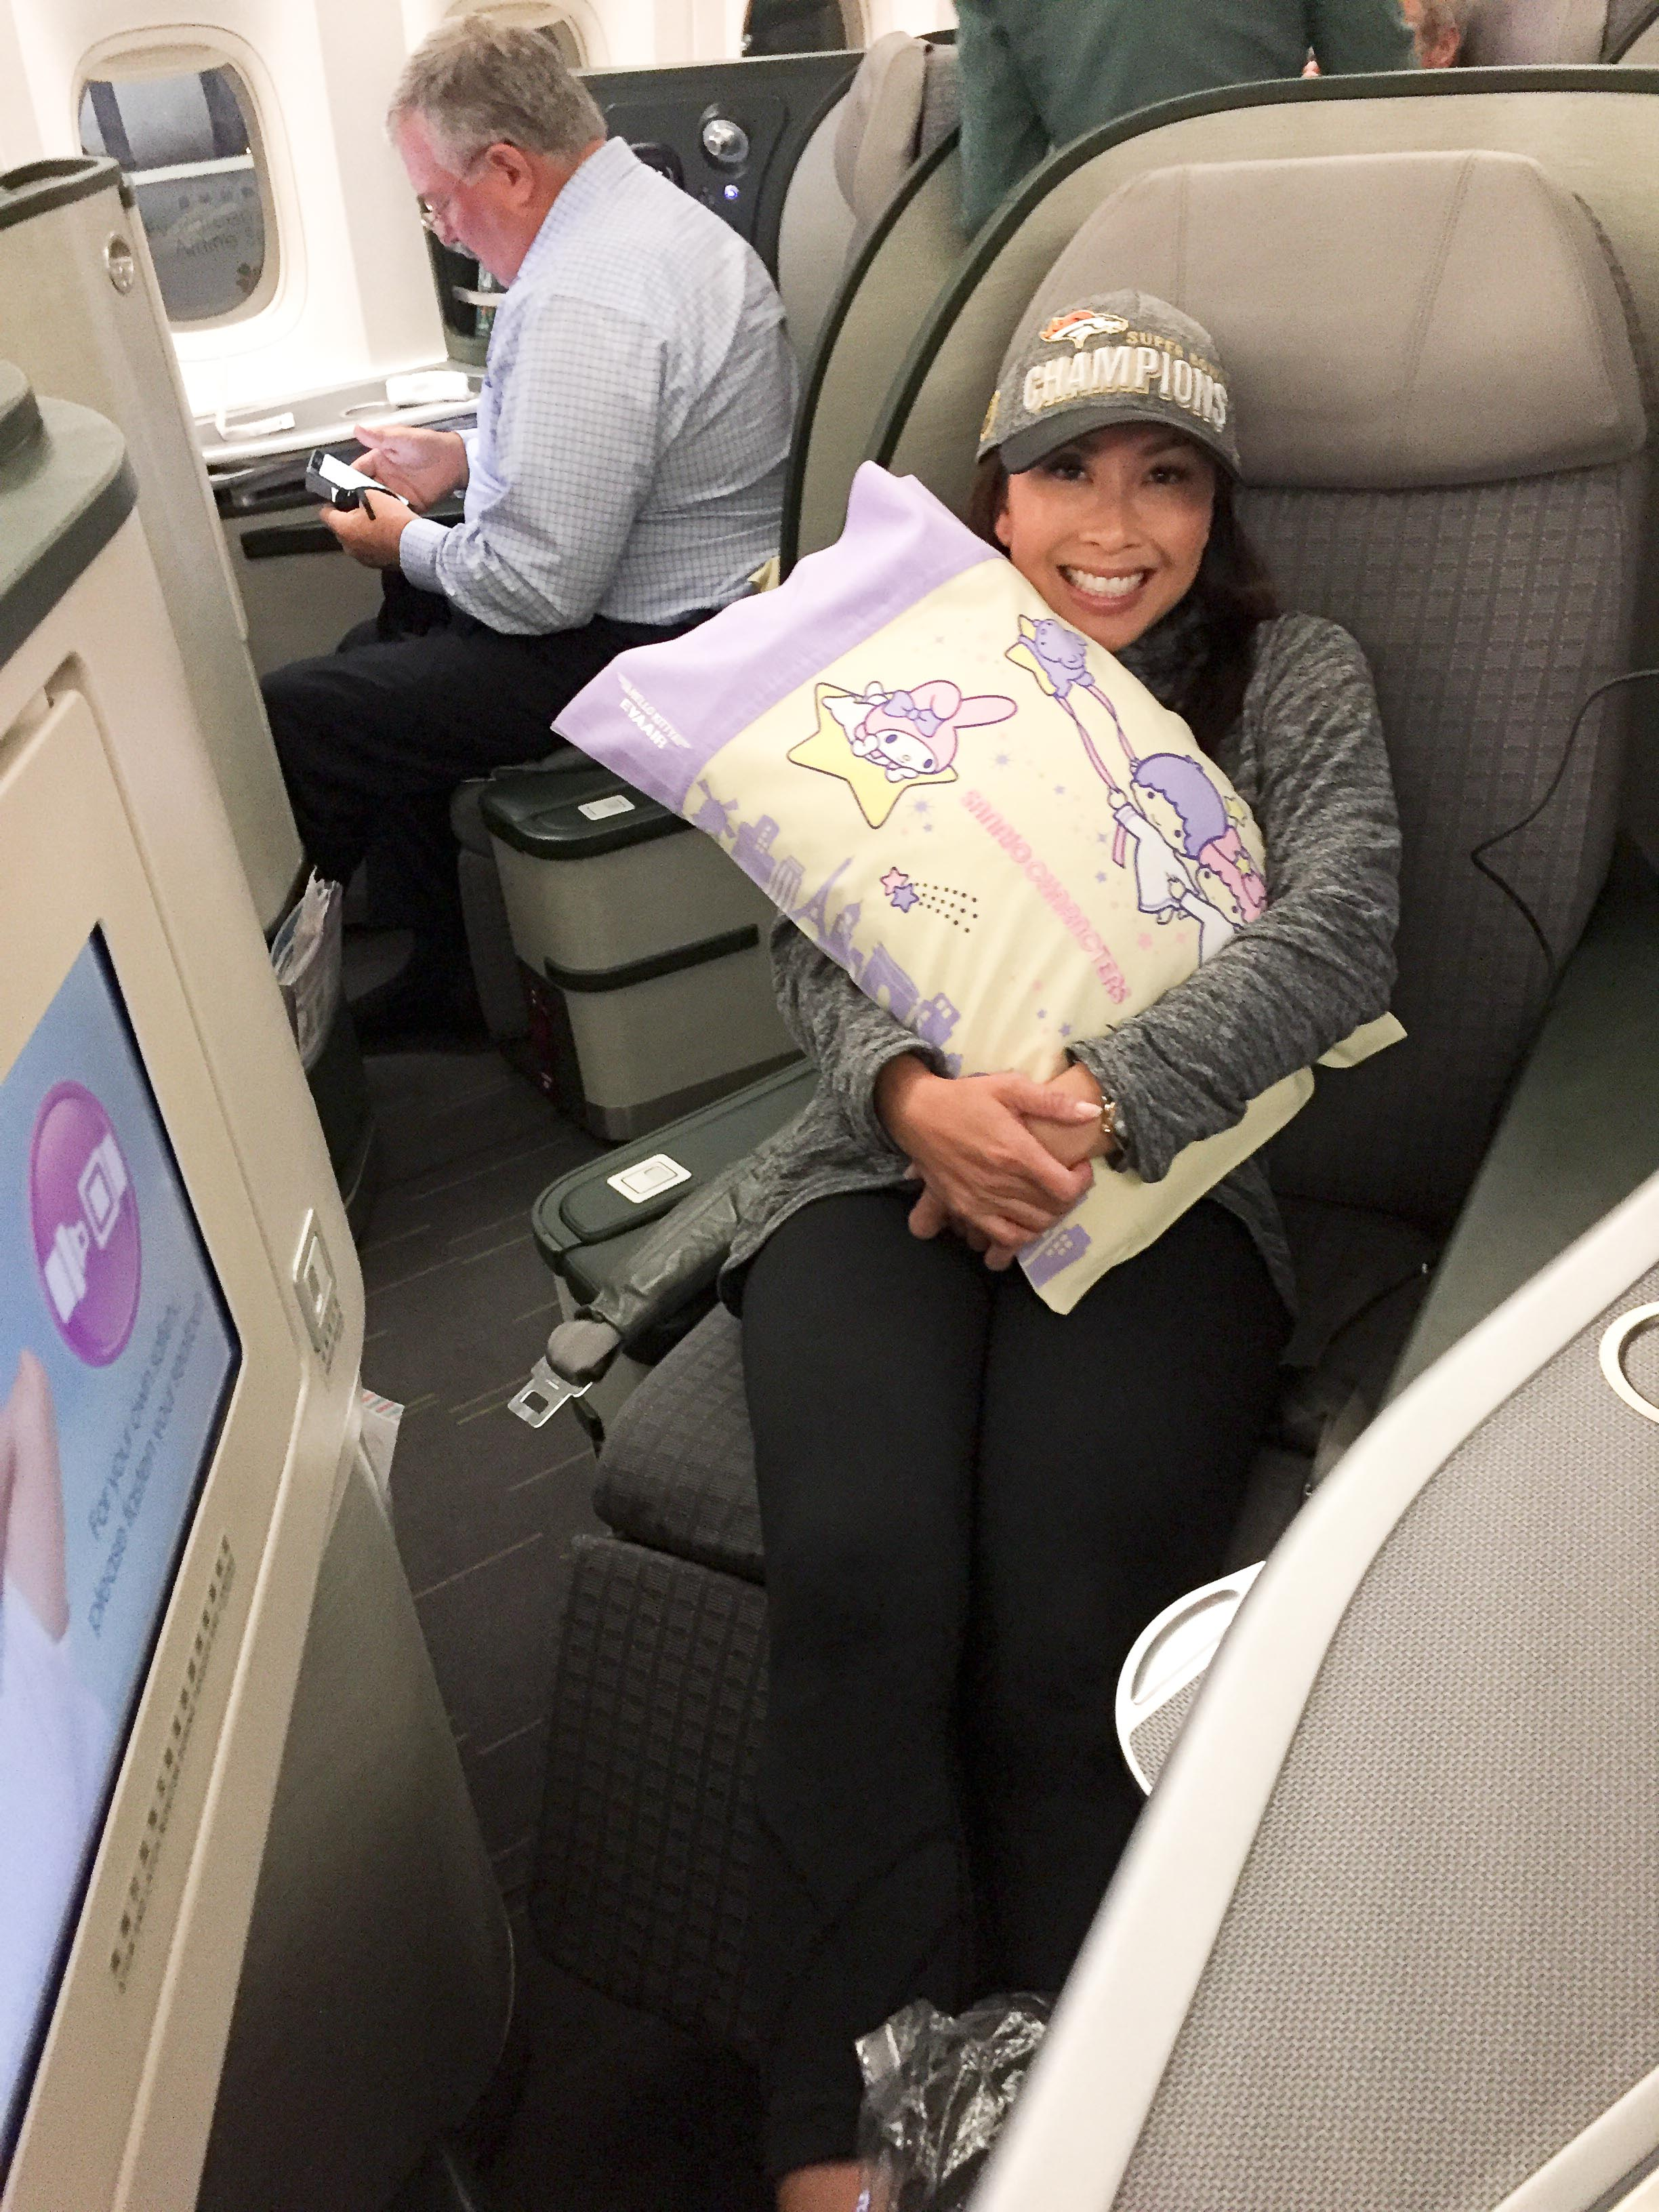 The author on board EVA Air